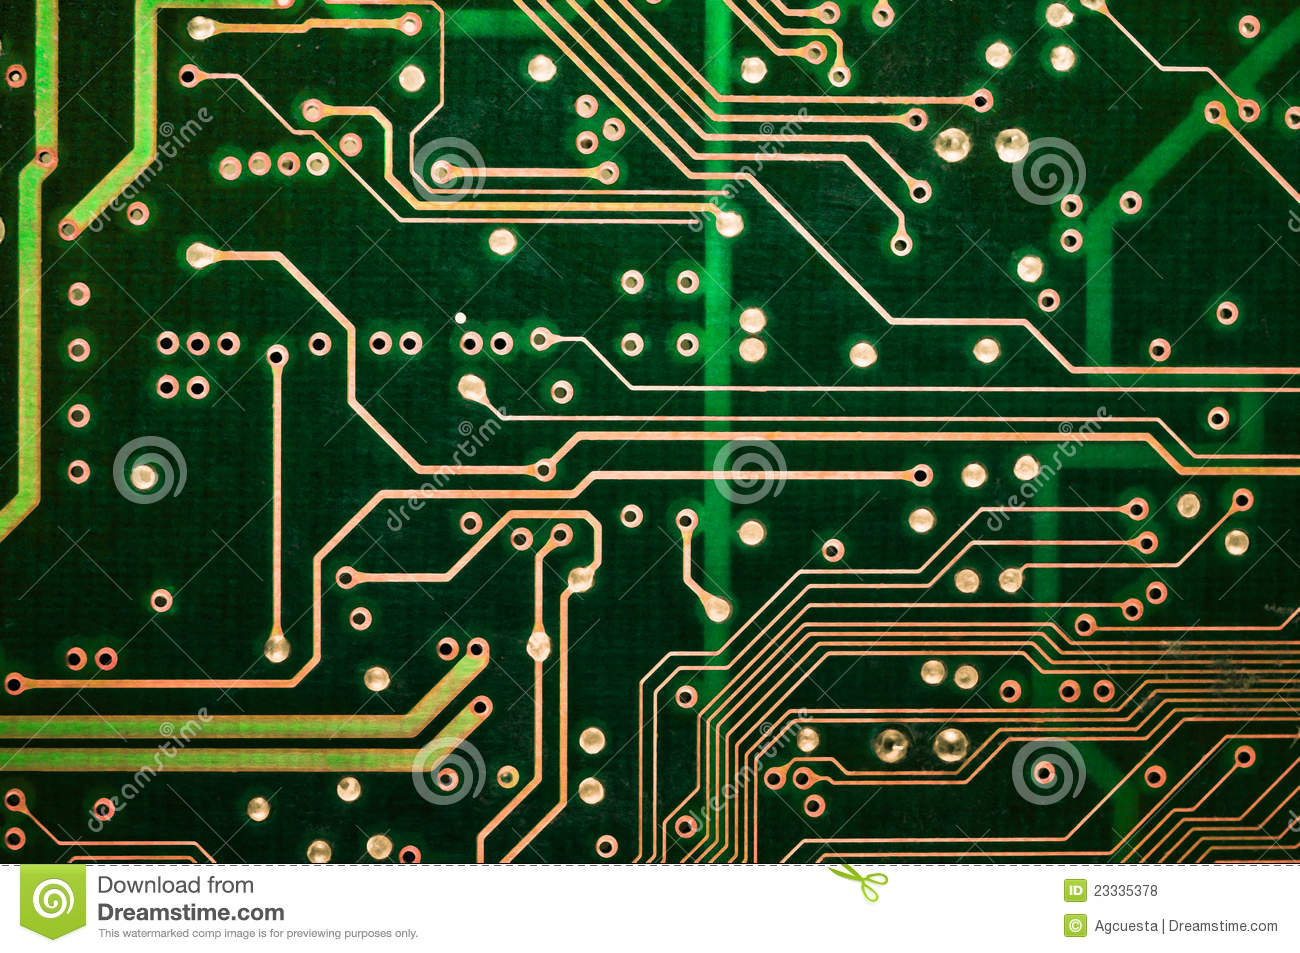 Pcb Tracks And Connections On Green Circuit Board